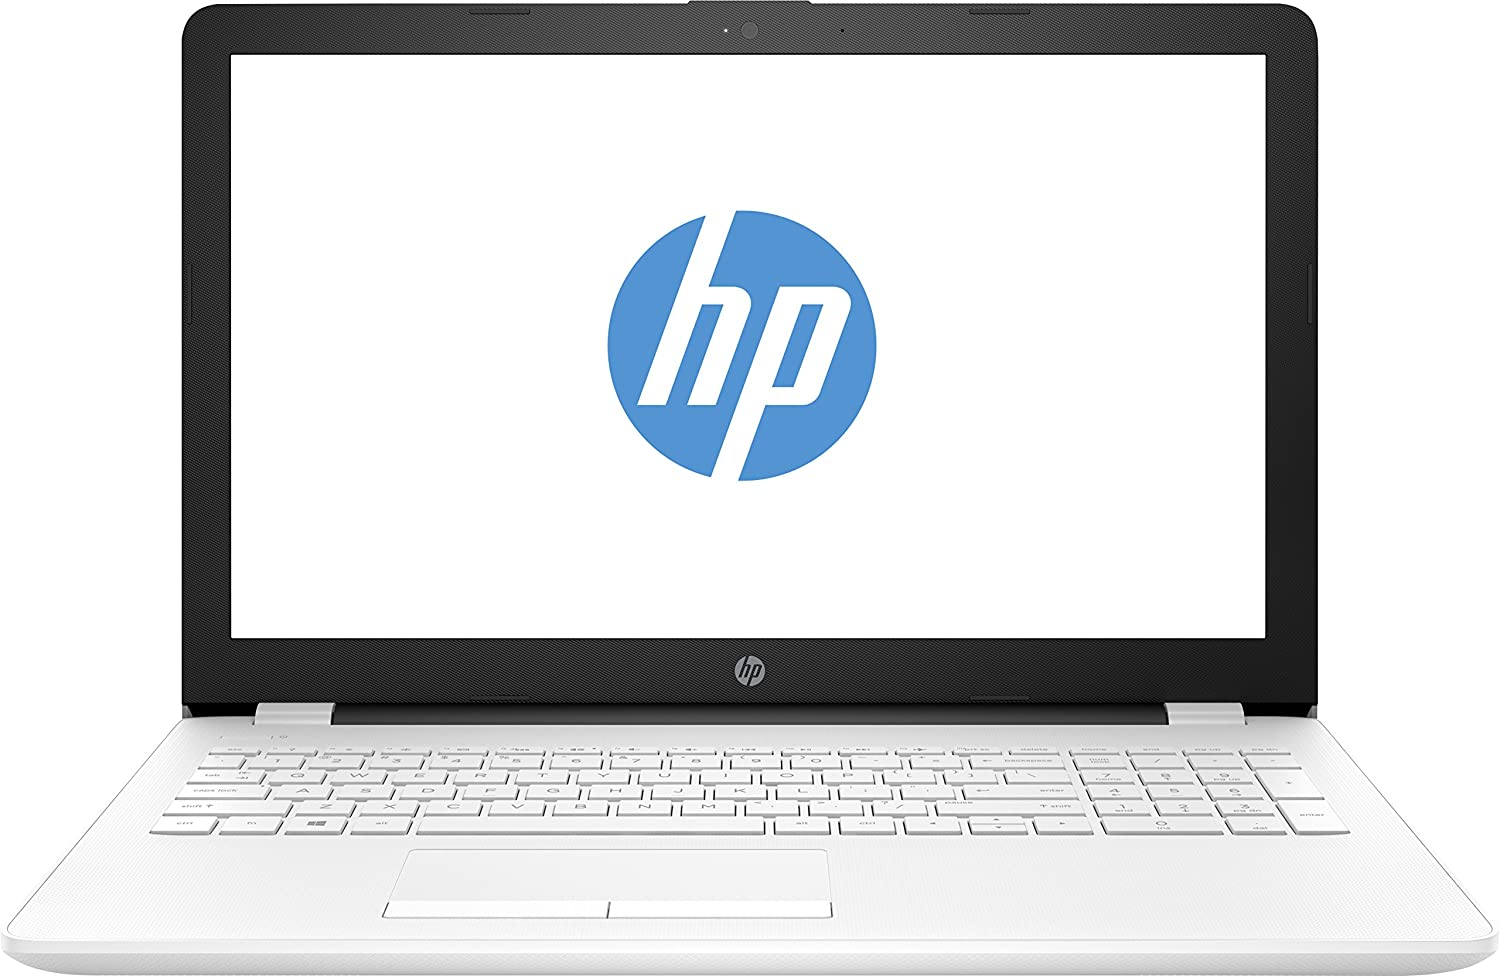 Portátil HP 15-BS014NS i5-7200U 4GB 500GB 15.6